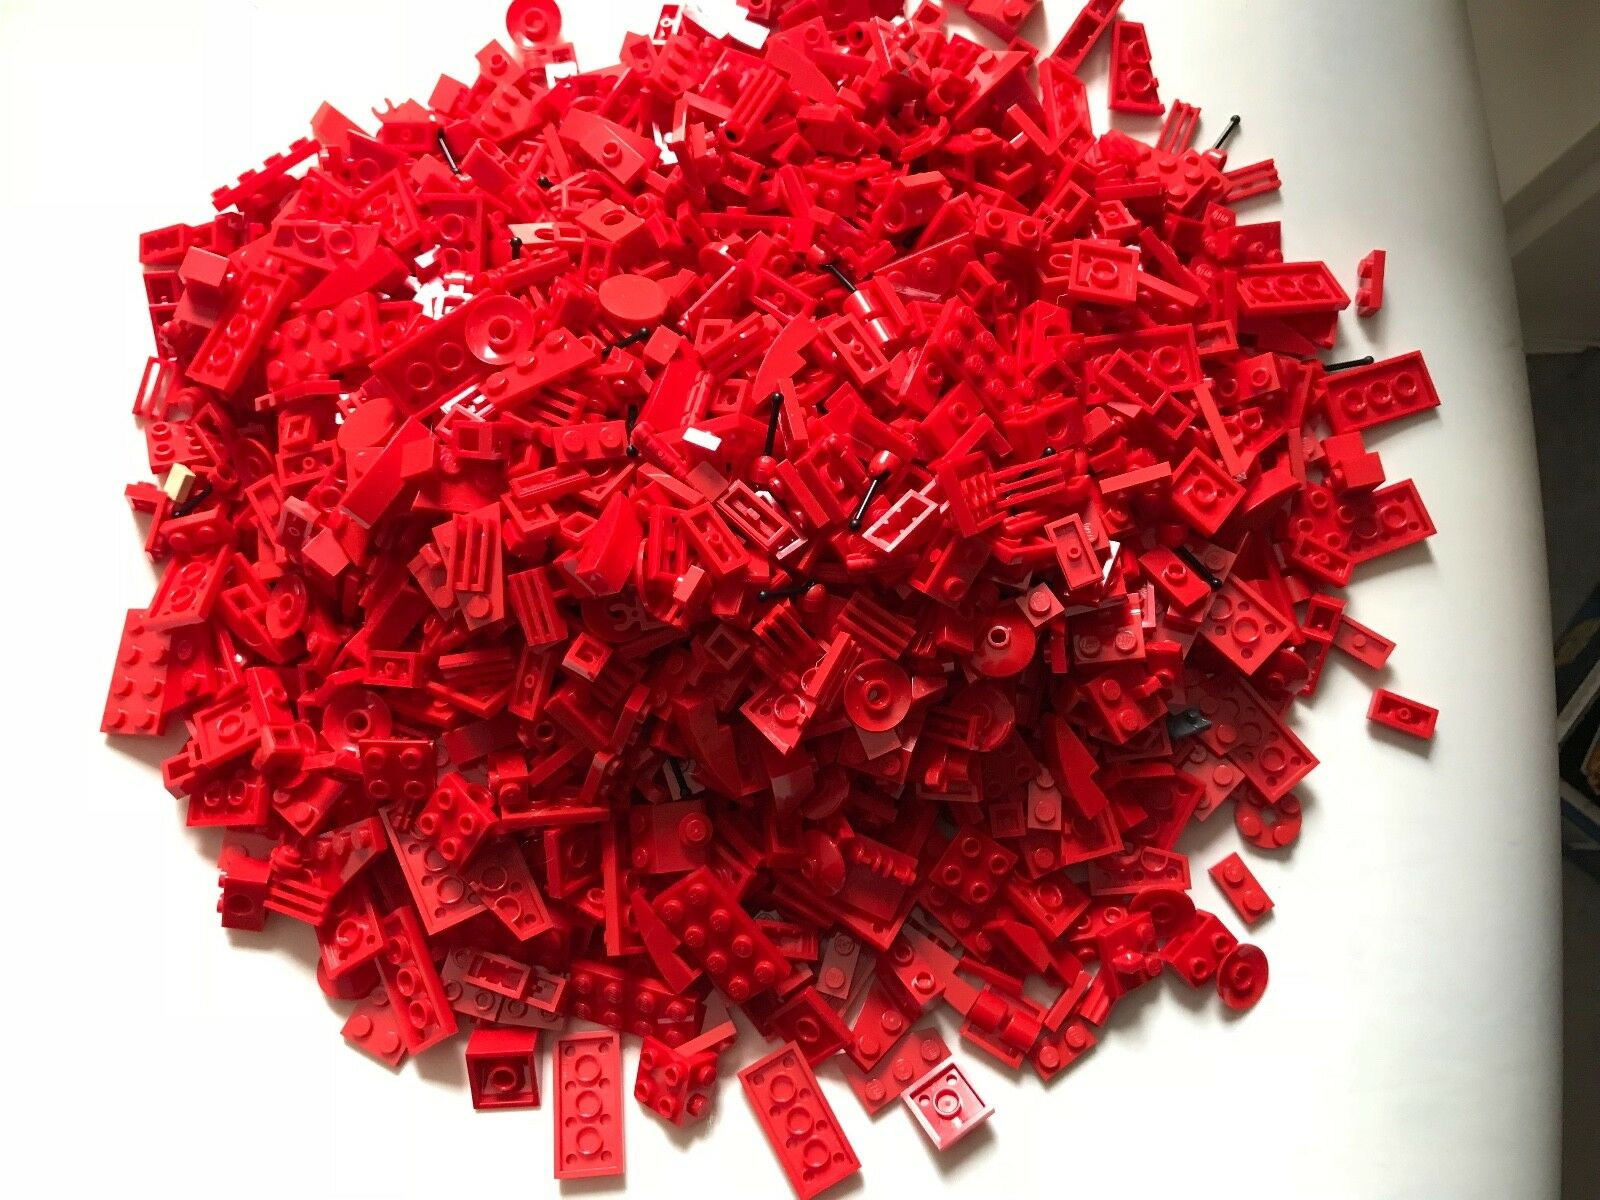 880g LEGO parts - RED lot - MODIFIED SMALL PARTS - KEY PARTS FOR FINISH rare